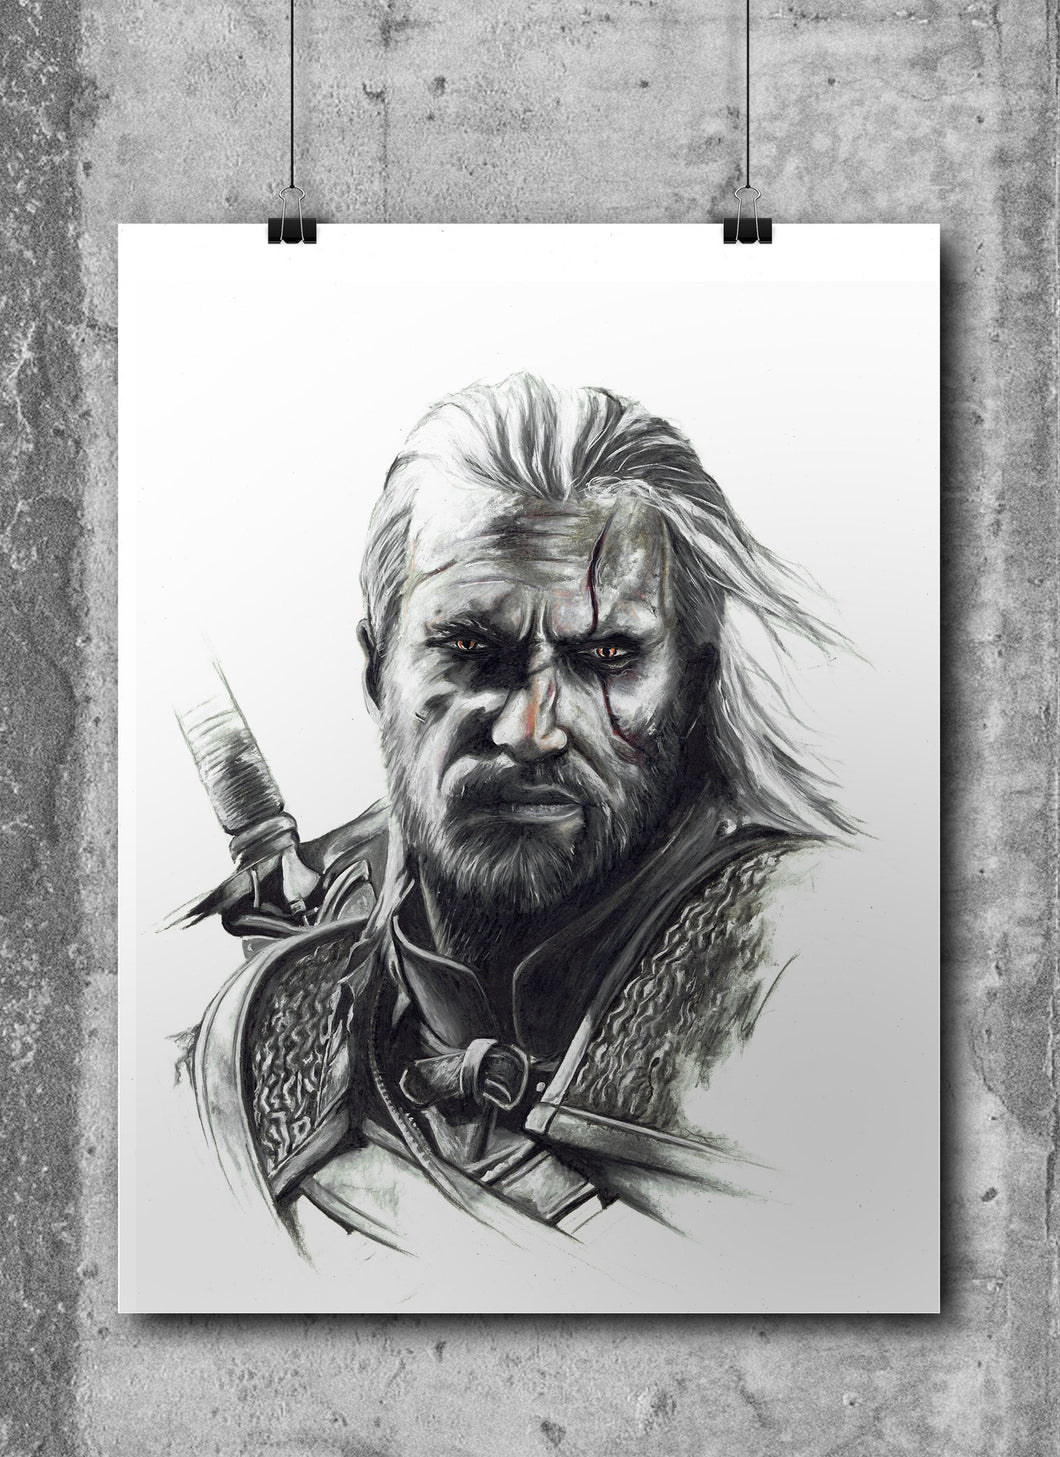 Geralt of Rivia/The Witcher